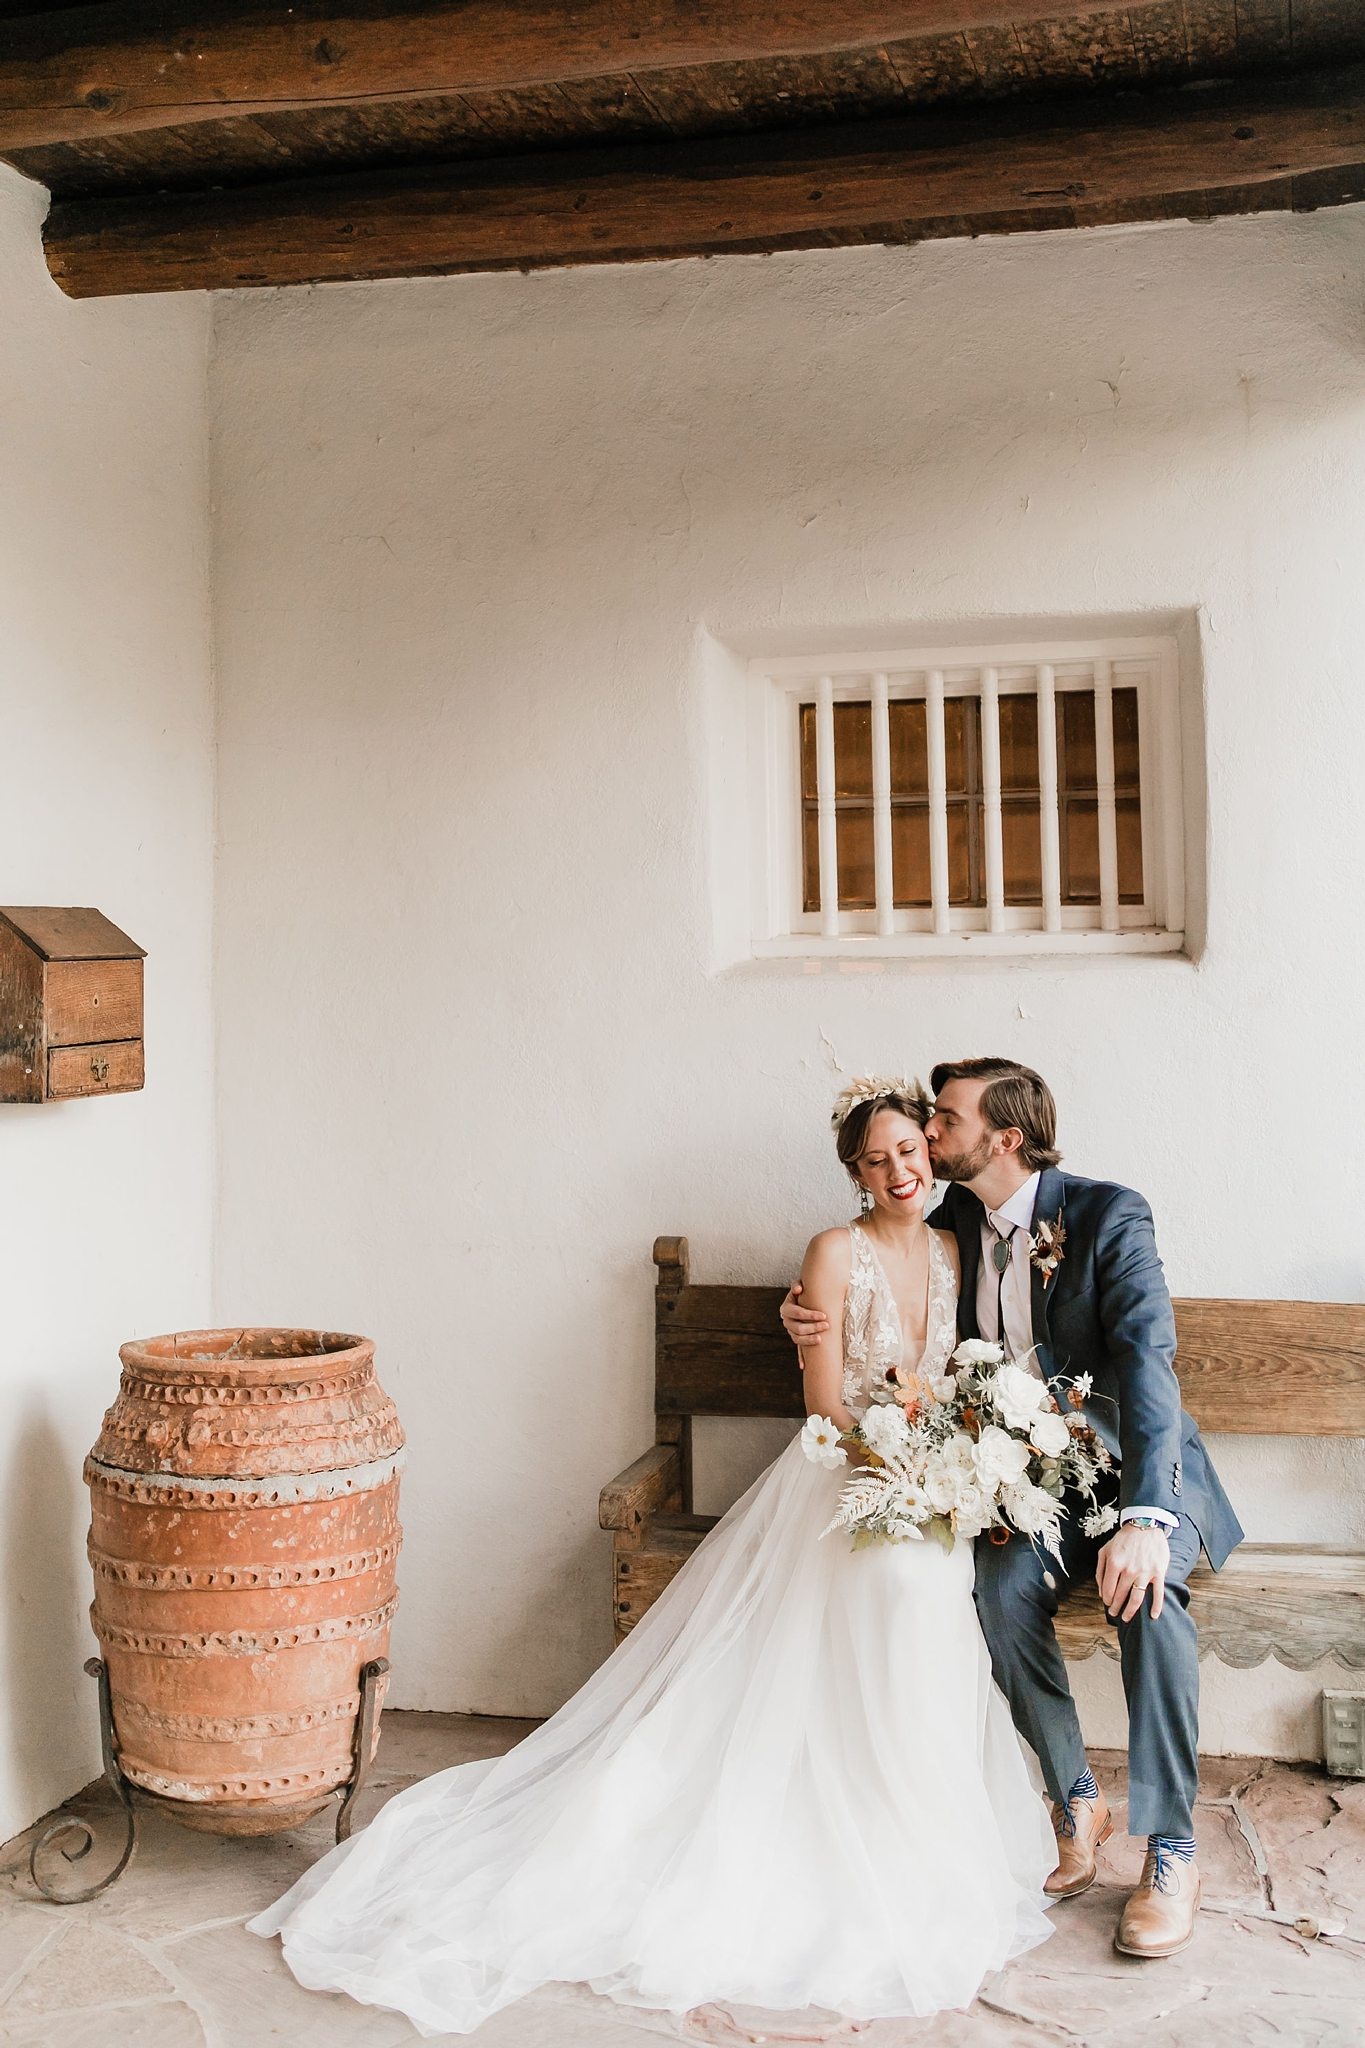 Alicia+lucia+photography+-+albuquerque+wedding+photographer+-+santa+fe+wedding+photography+-+new+mexico+wedding+photographer+-+new+mexico+wedding+-+albuquerque+wedding+-+rocky+mountain+bride+-+los+poblanos+wedding_0084.jpg